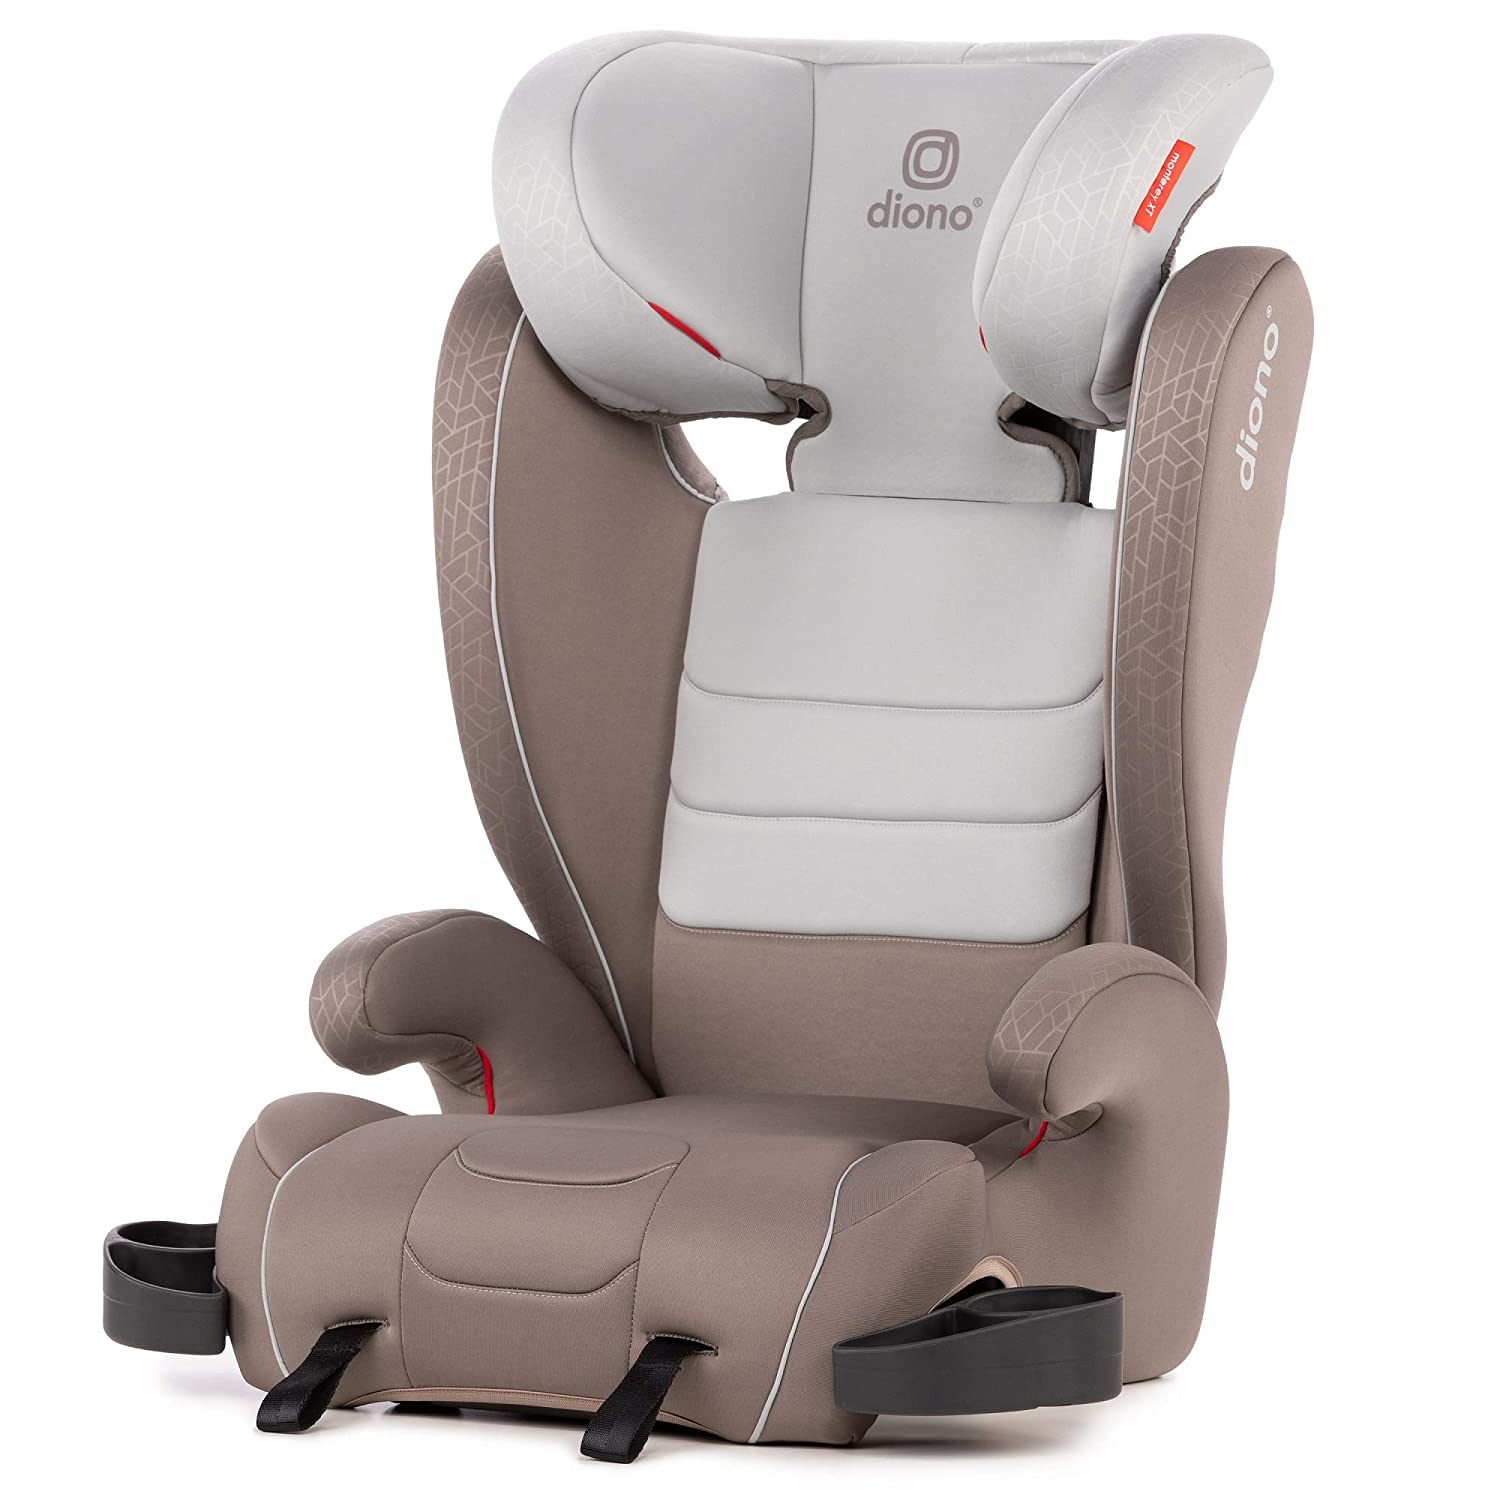 2-In-1 Car Seat Plum Diono Monterey XT Booster